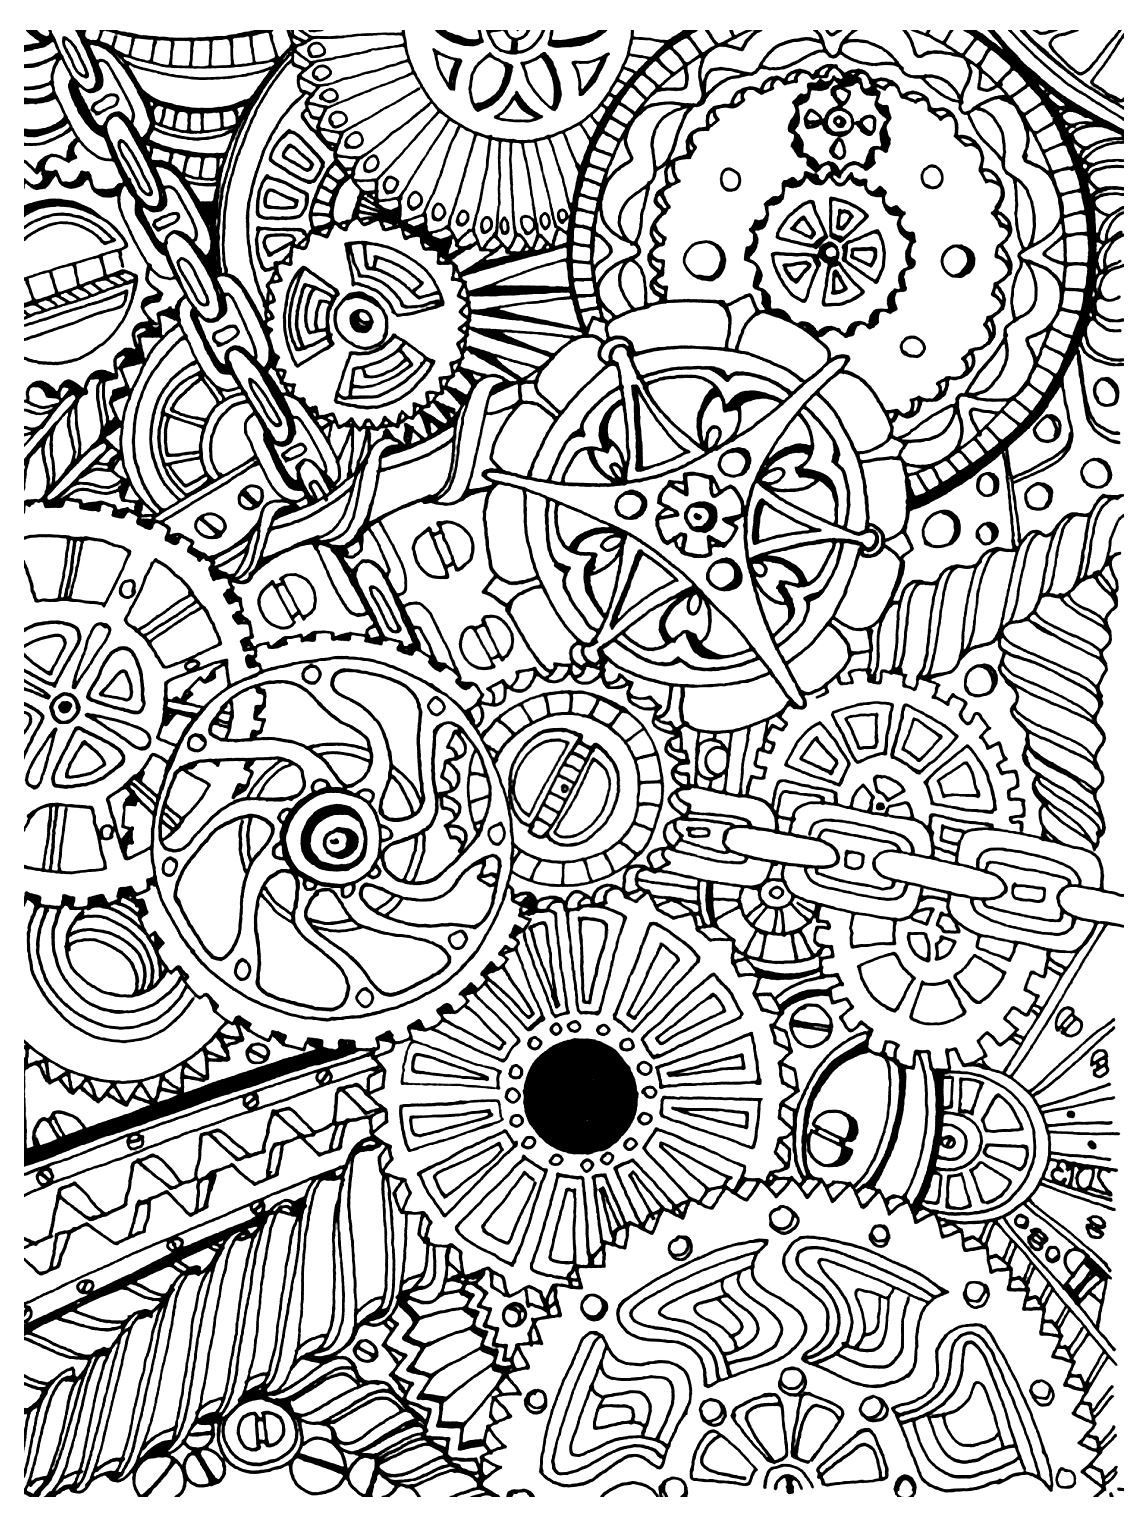 Best ideas about Adult Stress Coloring Books . Save or Pin To print this free coloring page coloring adult zen anti Now.